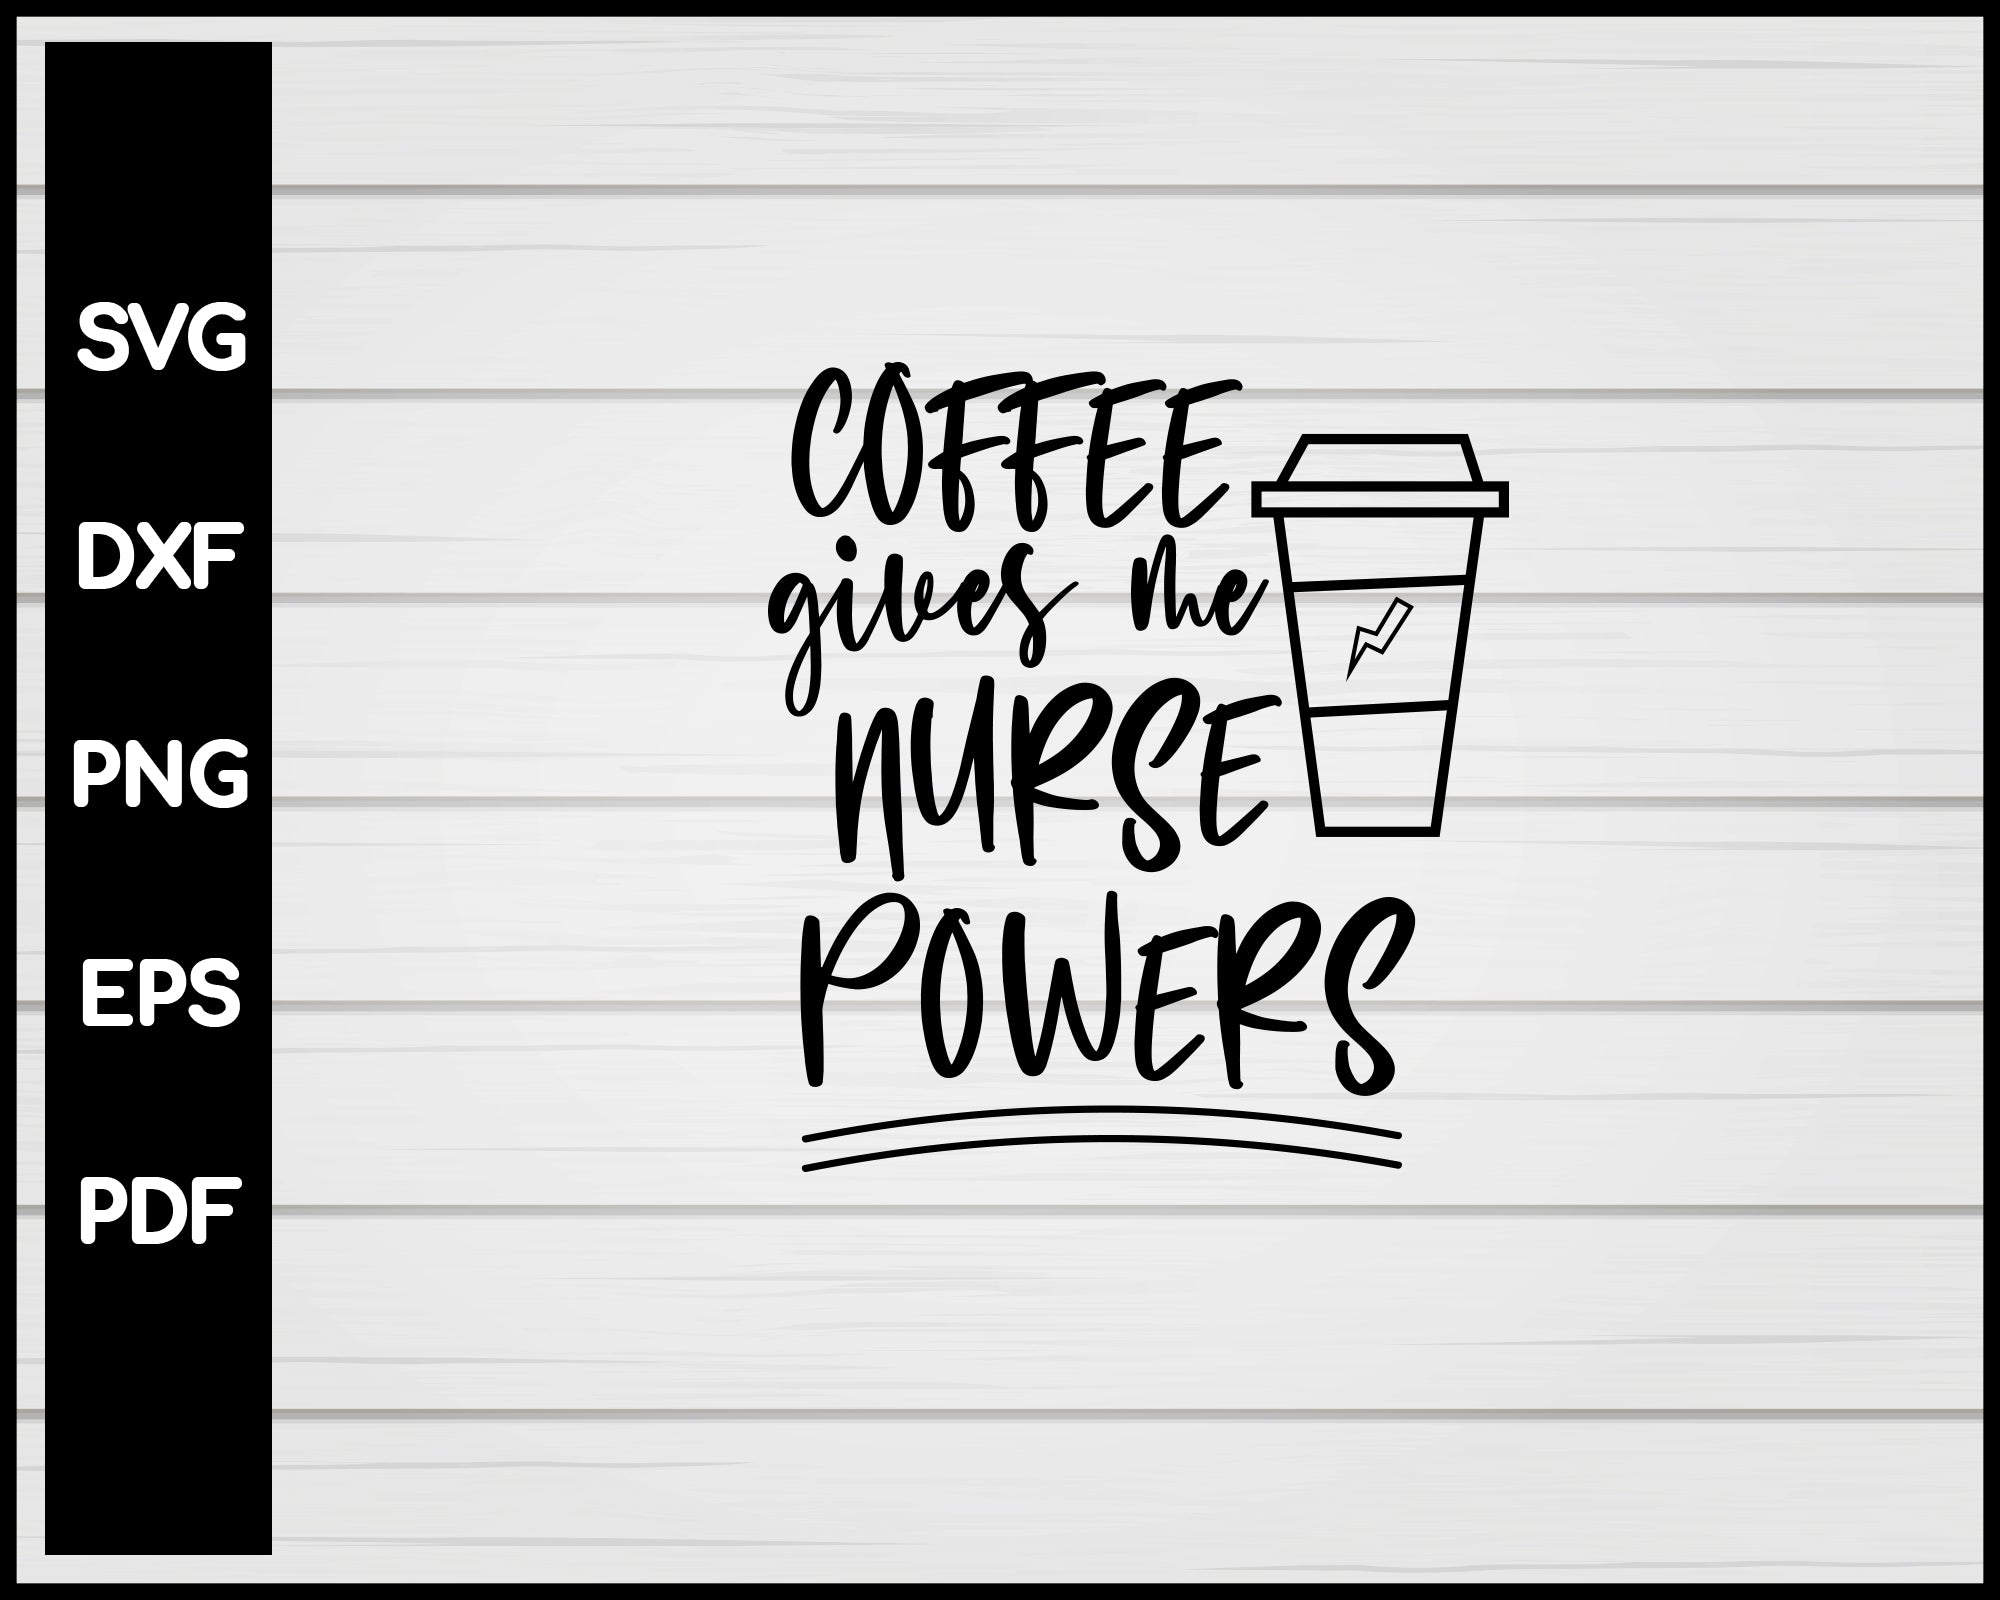 Coffee Gives Me Nurse Powers svg Cut File For Cricut Silhouette eps png dxf Printable Files